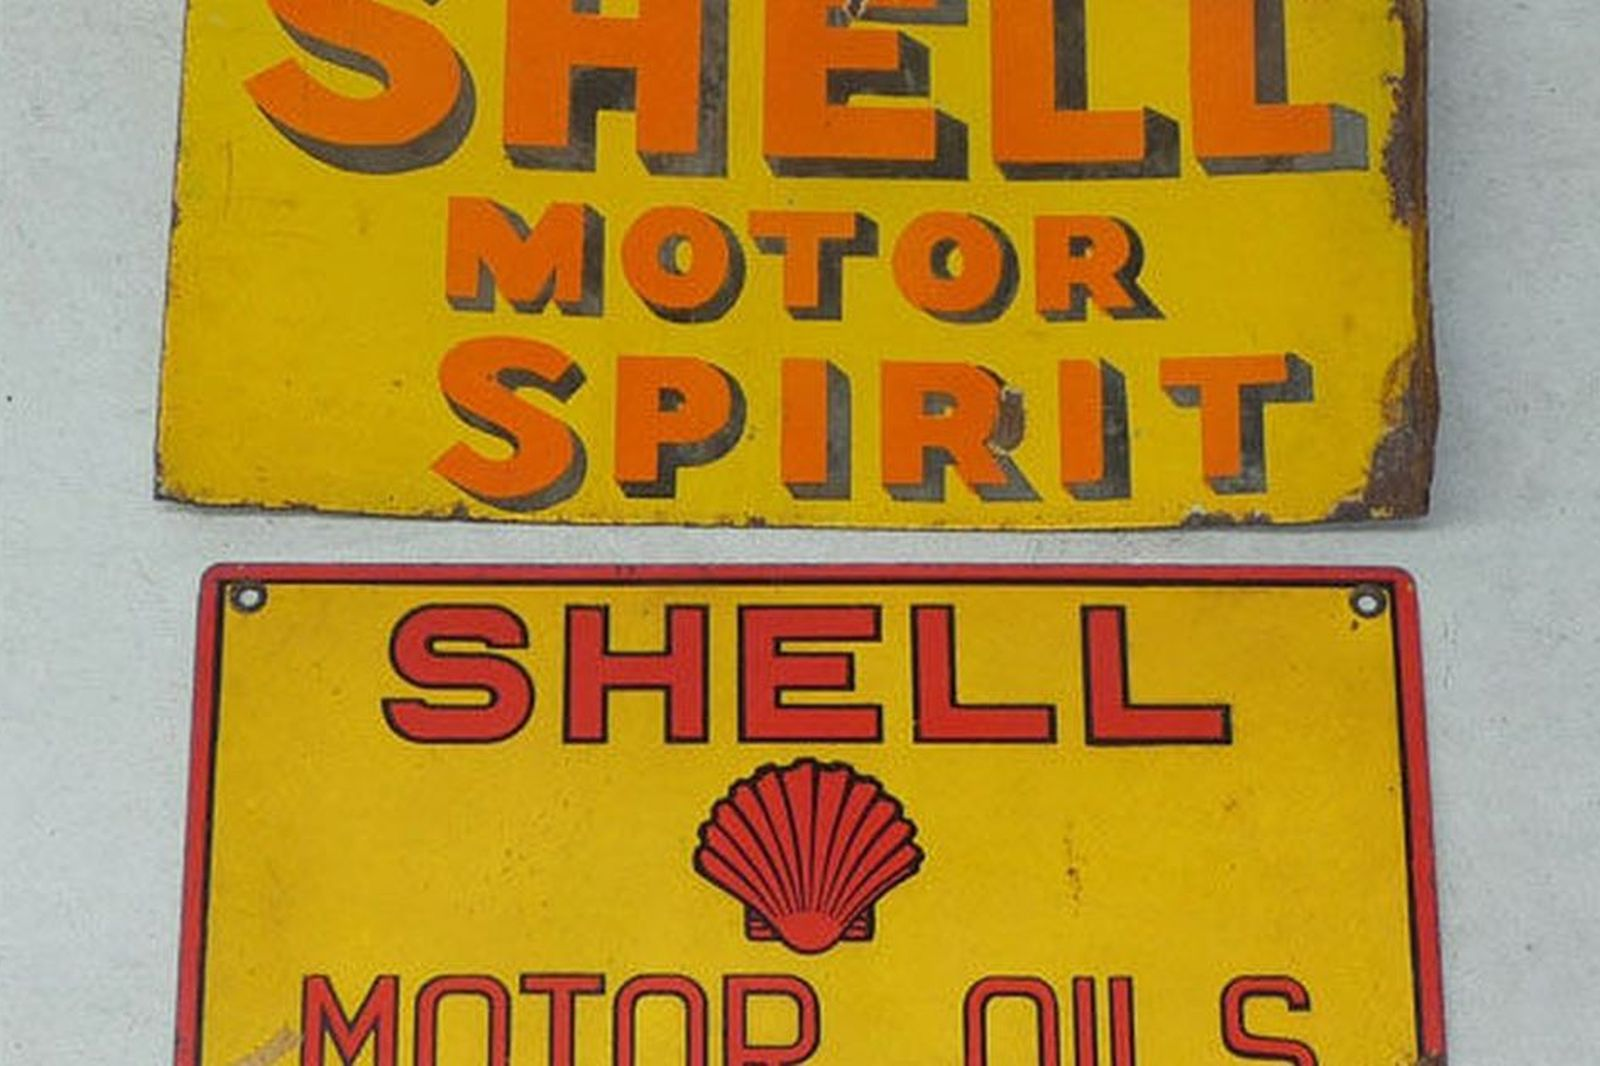 Sold: Enamel Signs x 2 - Shell Double Sided Post Mount